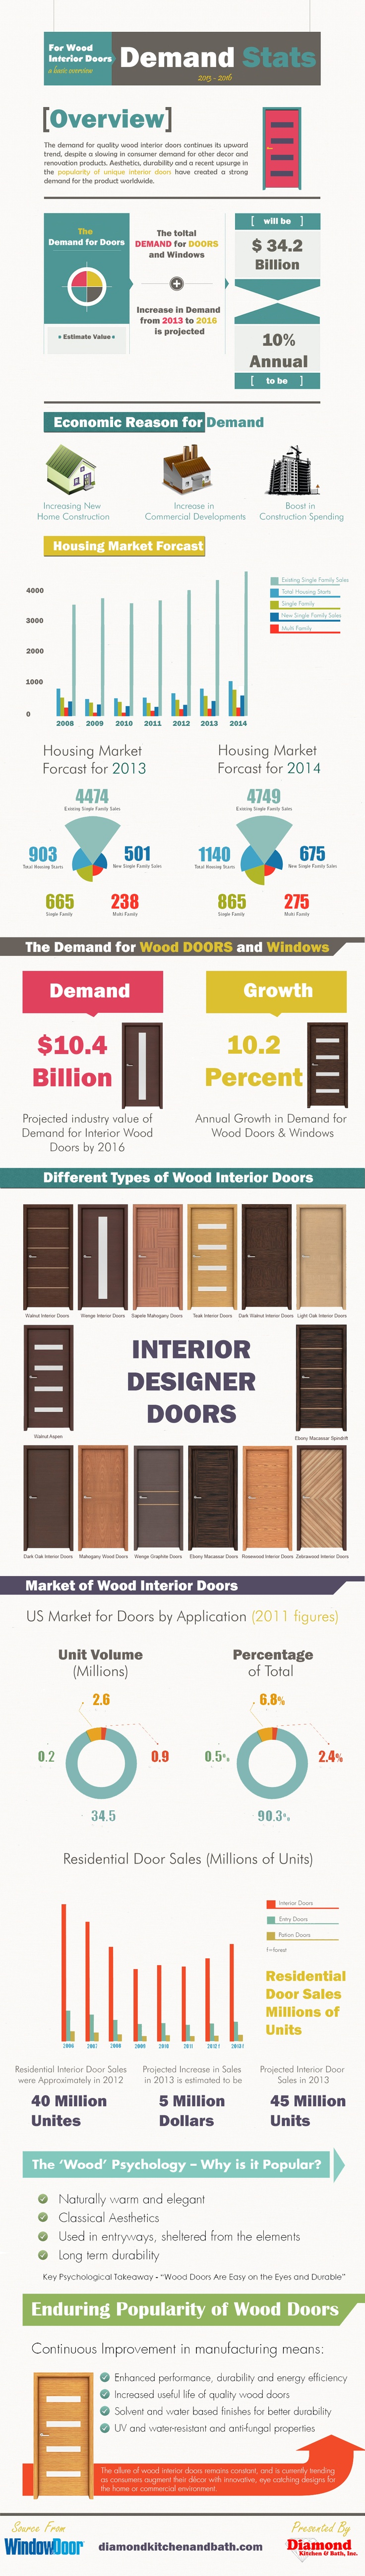 The demand for quality wood interior doors continues its upward trend, despite a slowing in consumer demand for other decor and renovation products.